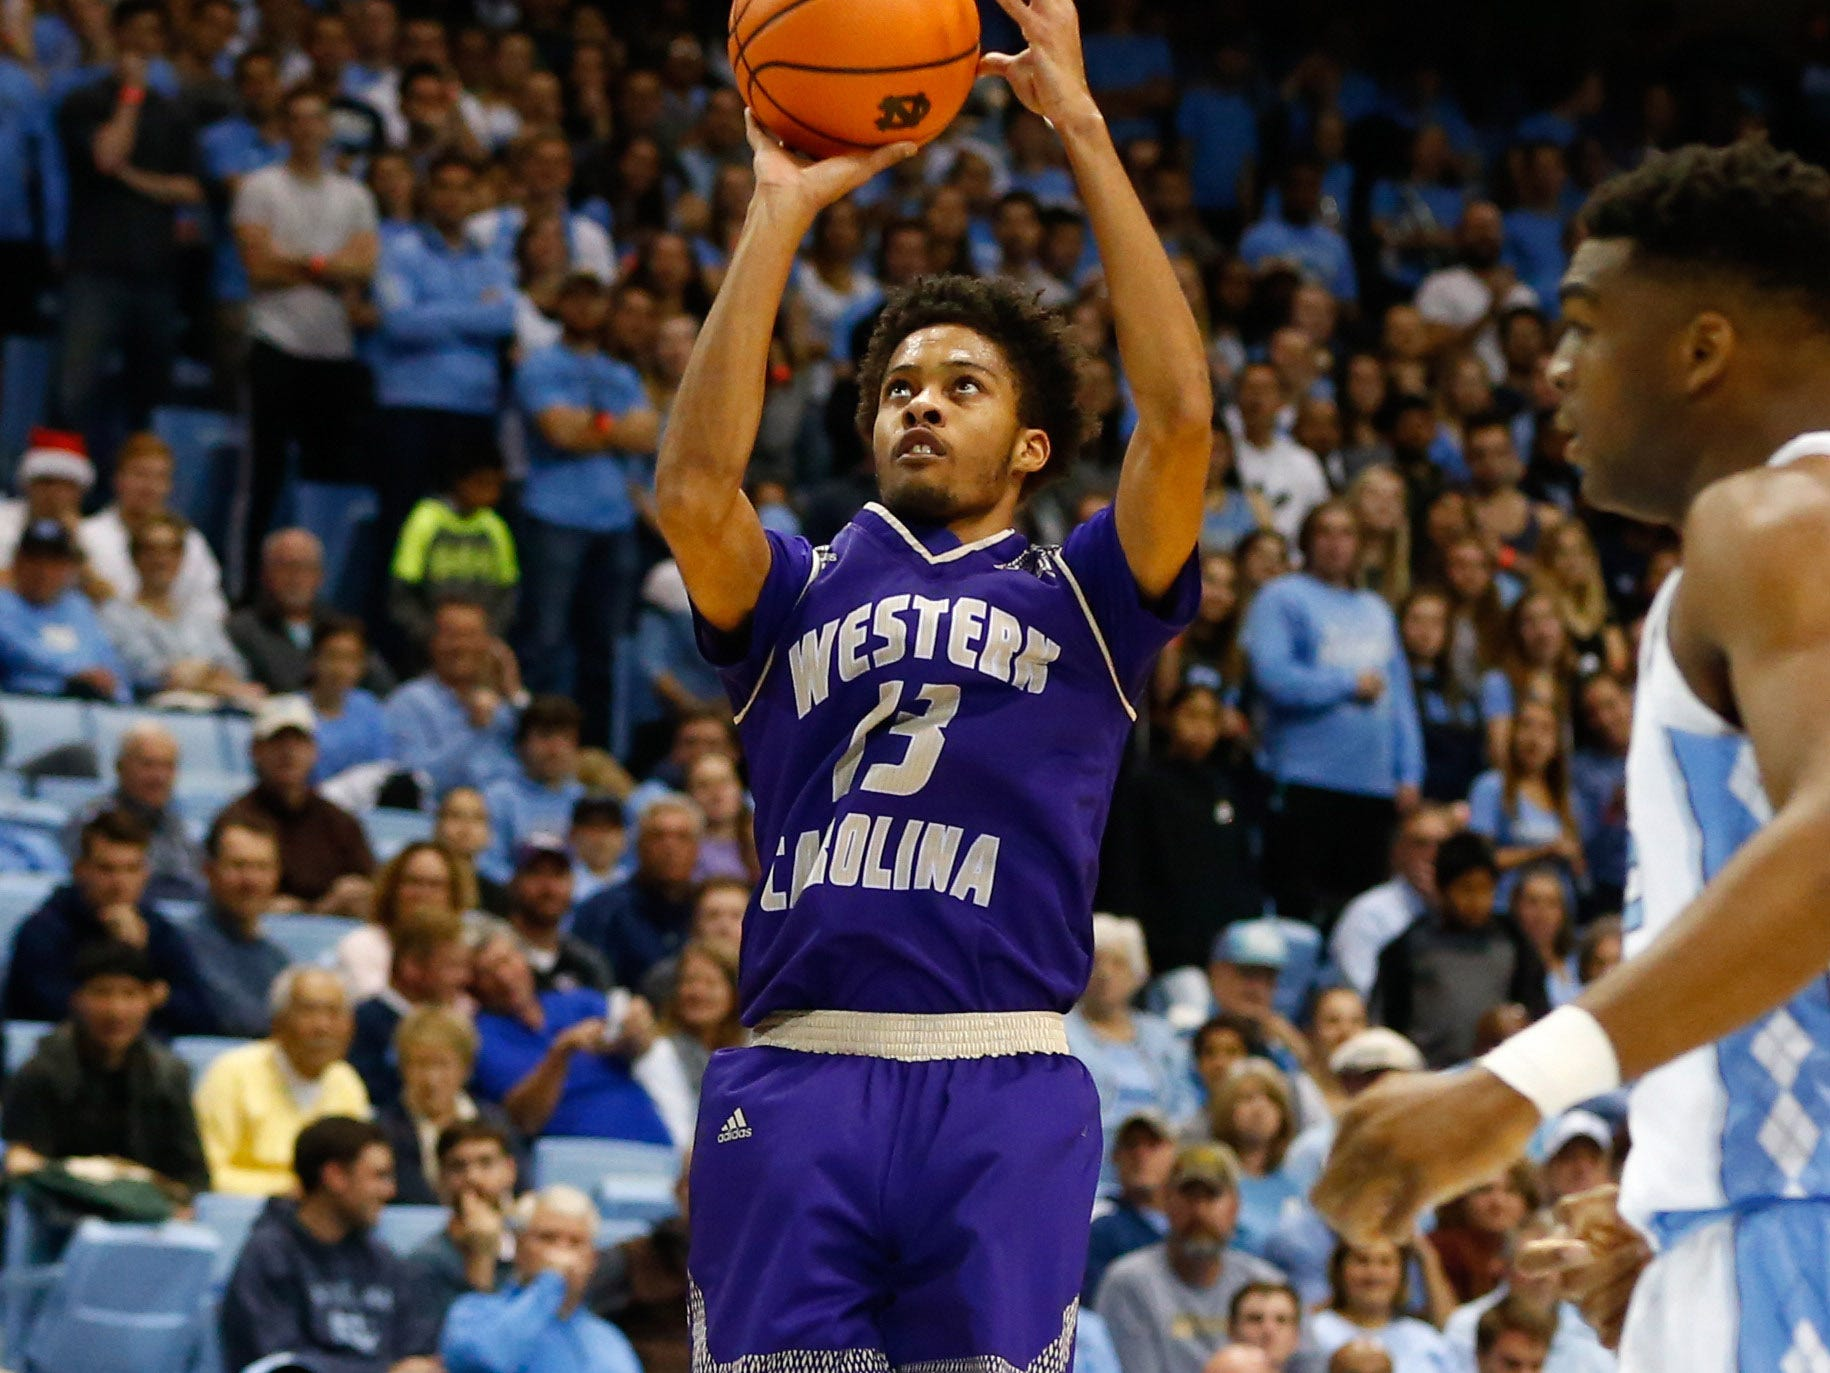 Dec 6, 2017; Chapel Hill, NC, USA; Western Carolina Catamounts guard Deriece Parks (13) shoots a three pointer in the first half against the North Carolina Tar Heels at Dean E. Smith Center. Mandatory Credit: Jeremy Brevard-USA TODAY Sports